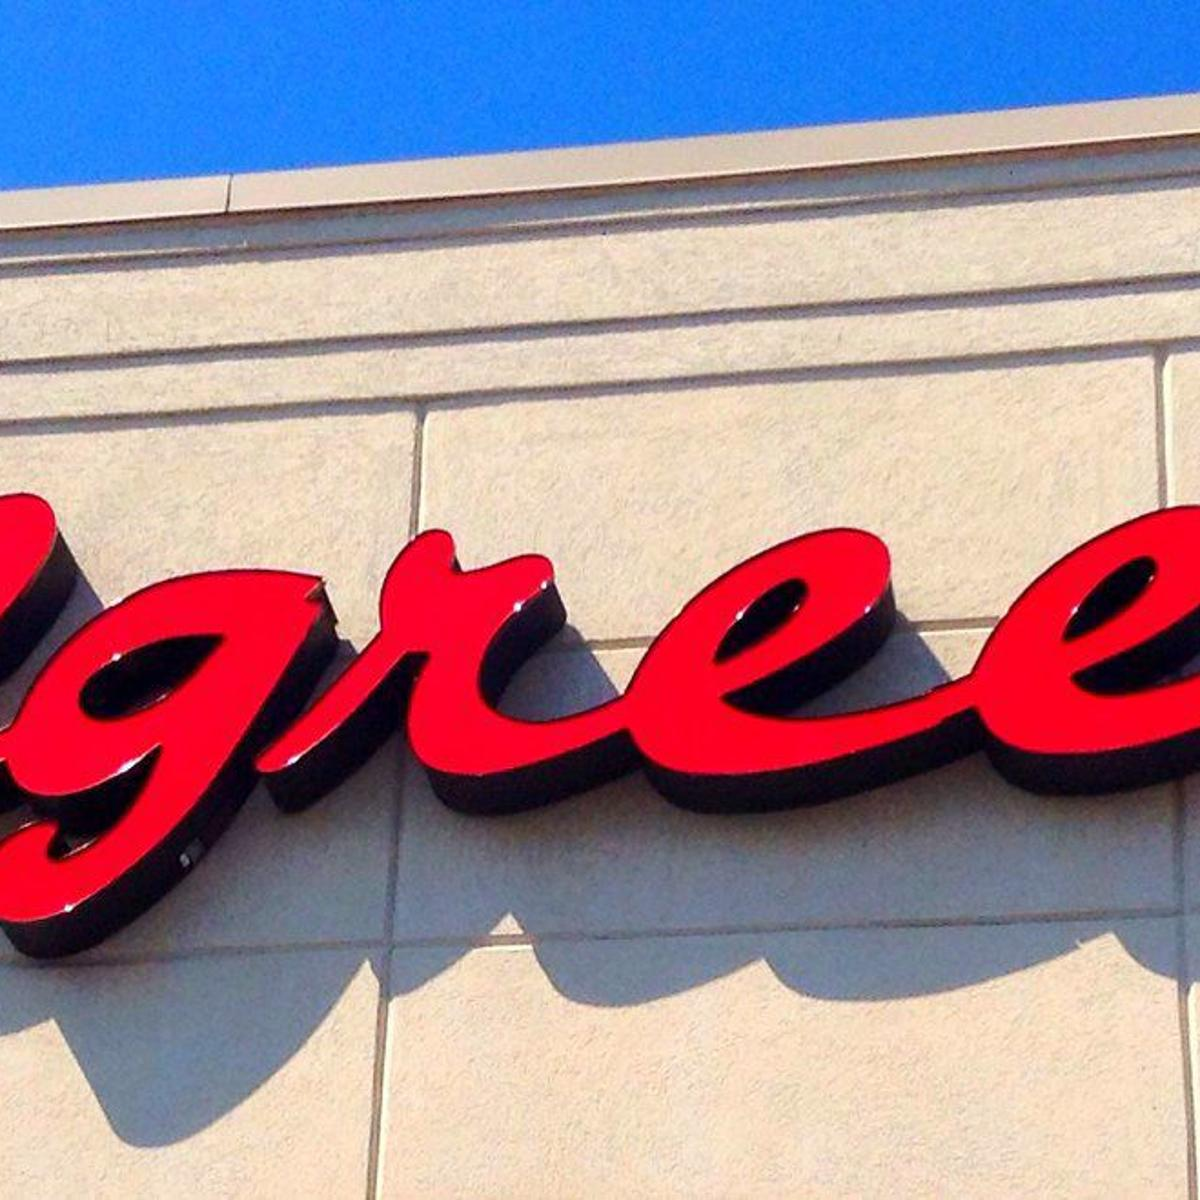 Man displays gun in Walgreens after complaining about JUUL